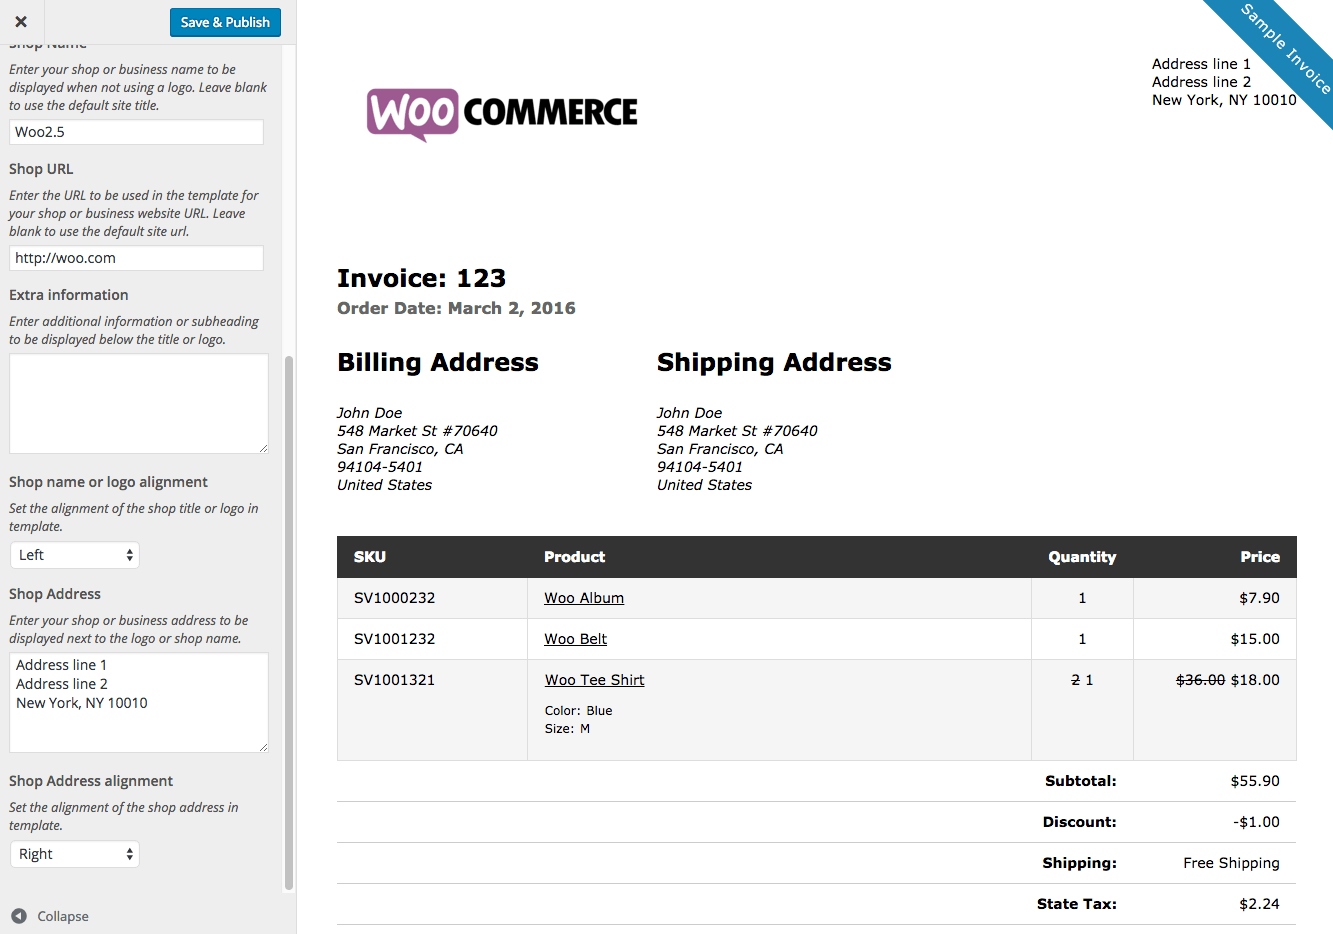 Angkajituus  Seductive Woocommerce Print Invoices Amp Packing Lists  Woocommerce Docs With Lovely Woocommerce Print Invoices  Packing Lists Customizer With Delightful Cash Receipts Format Also Limo Receipt Template In Addition What Is Receipt Money And Cash Receipts Procedures As Well As Template For A Receipt Of Payment Additionally Car Sale Receipt Pdf From Docswoocommercecom With Angkajituus  Lovely Woocommerce Print Invoices Amp Packing Lists  Woocommerce Docs With Delightful Woocommerce Print Invoices  Packing Lists Customizer And Seductive Cash Receipts Format Also Limo Receipt Template In Addition What Is Receipt Money From Docswoocommercecom